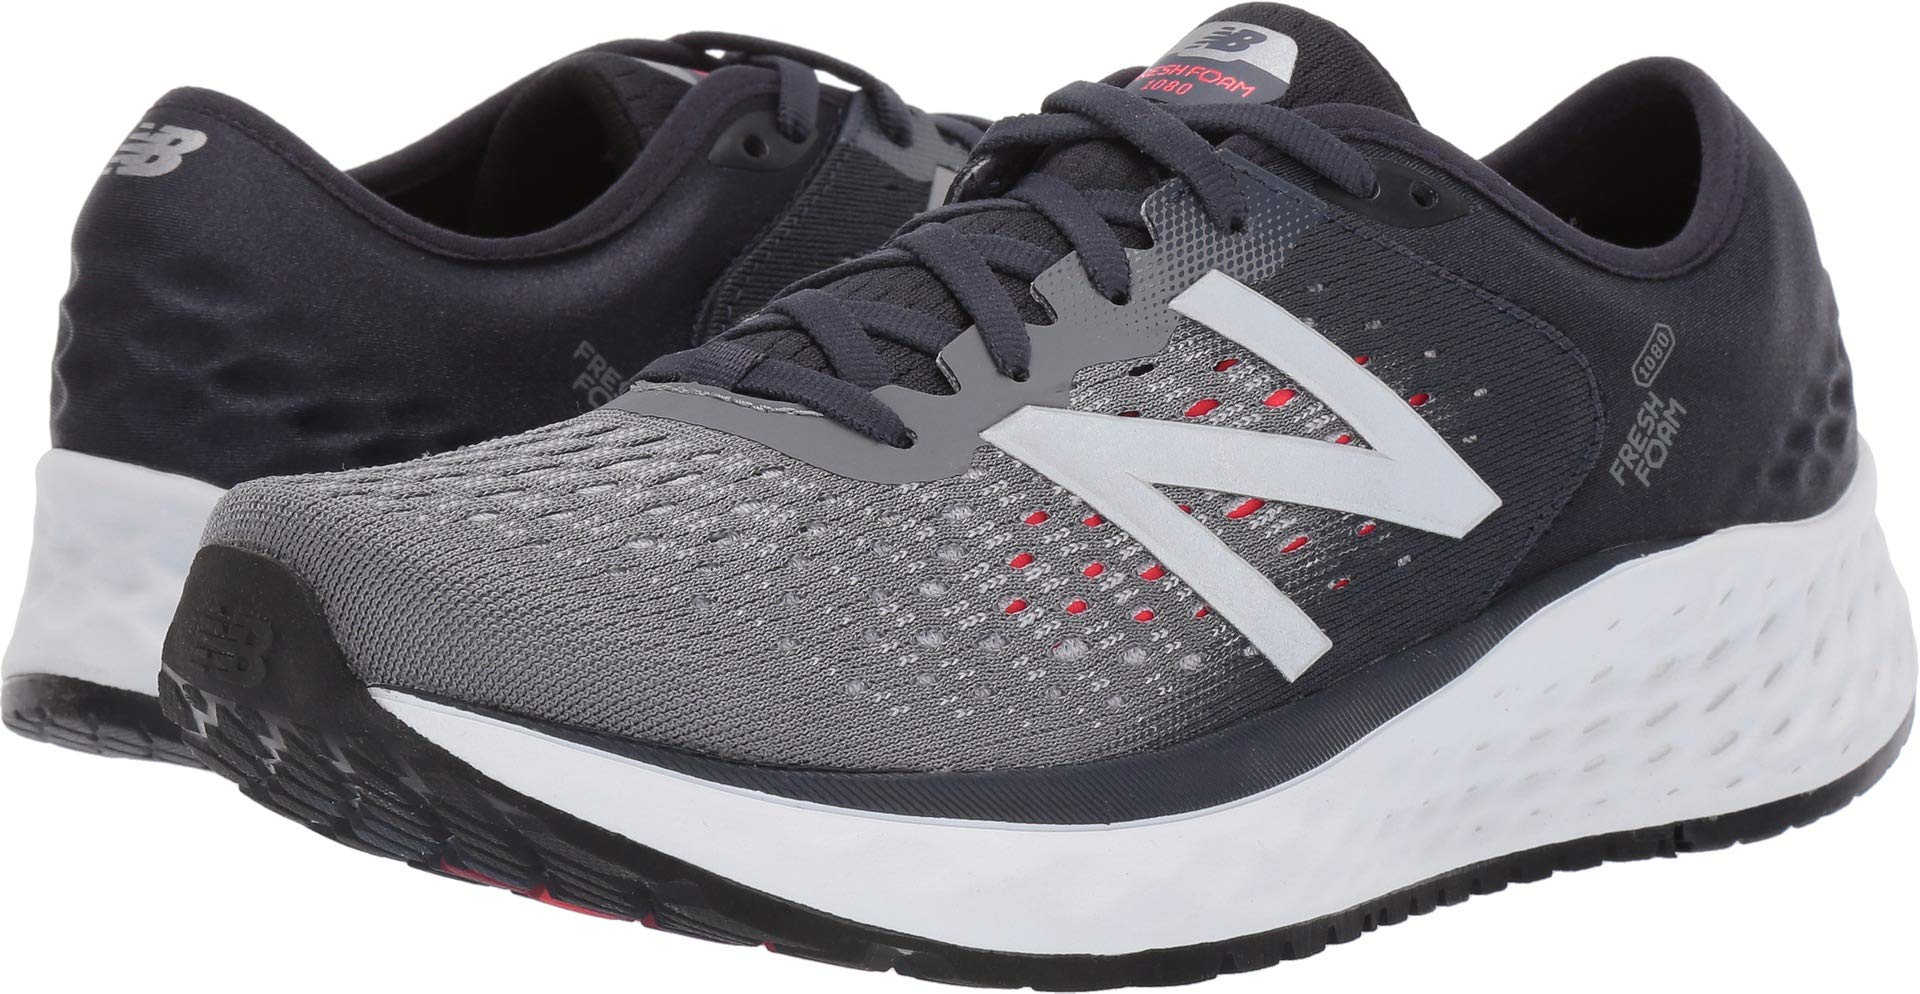 New Balance Men's 1080v9 Fresh Foam Running Shoe, Gunmetal/Outerspace/Energy red, 7 N US by New Balance (Image #1)